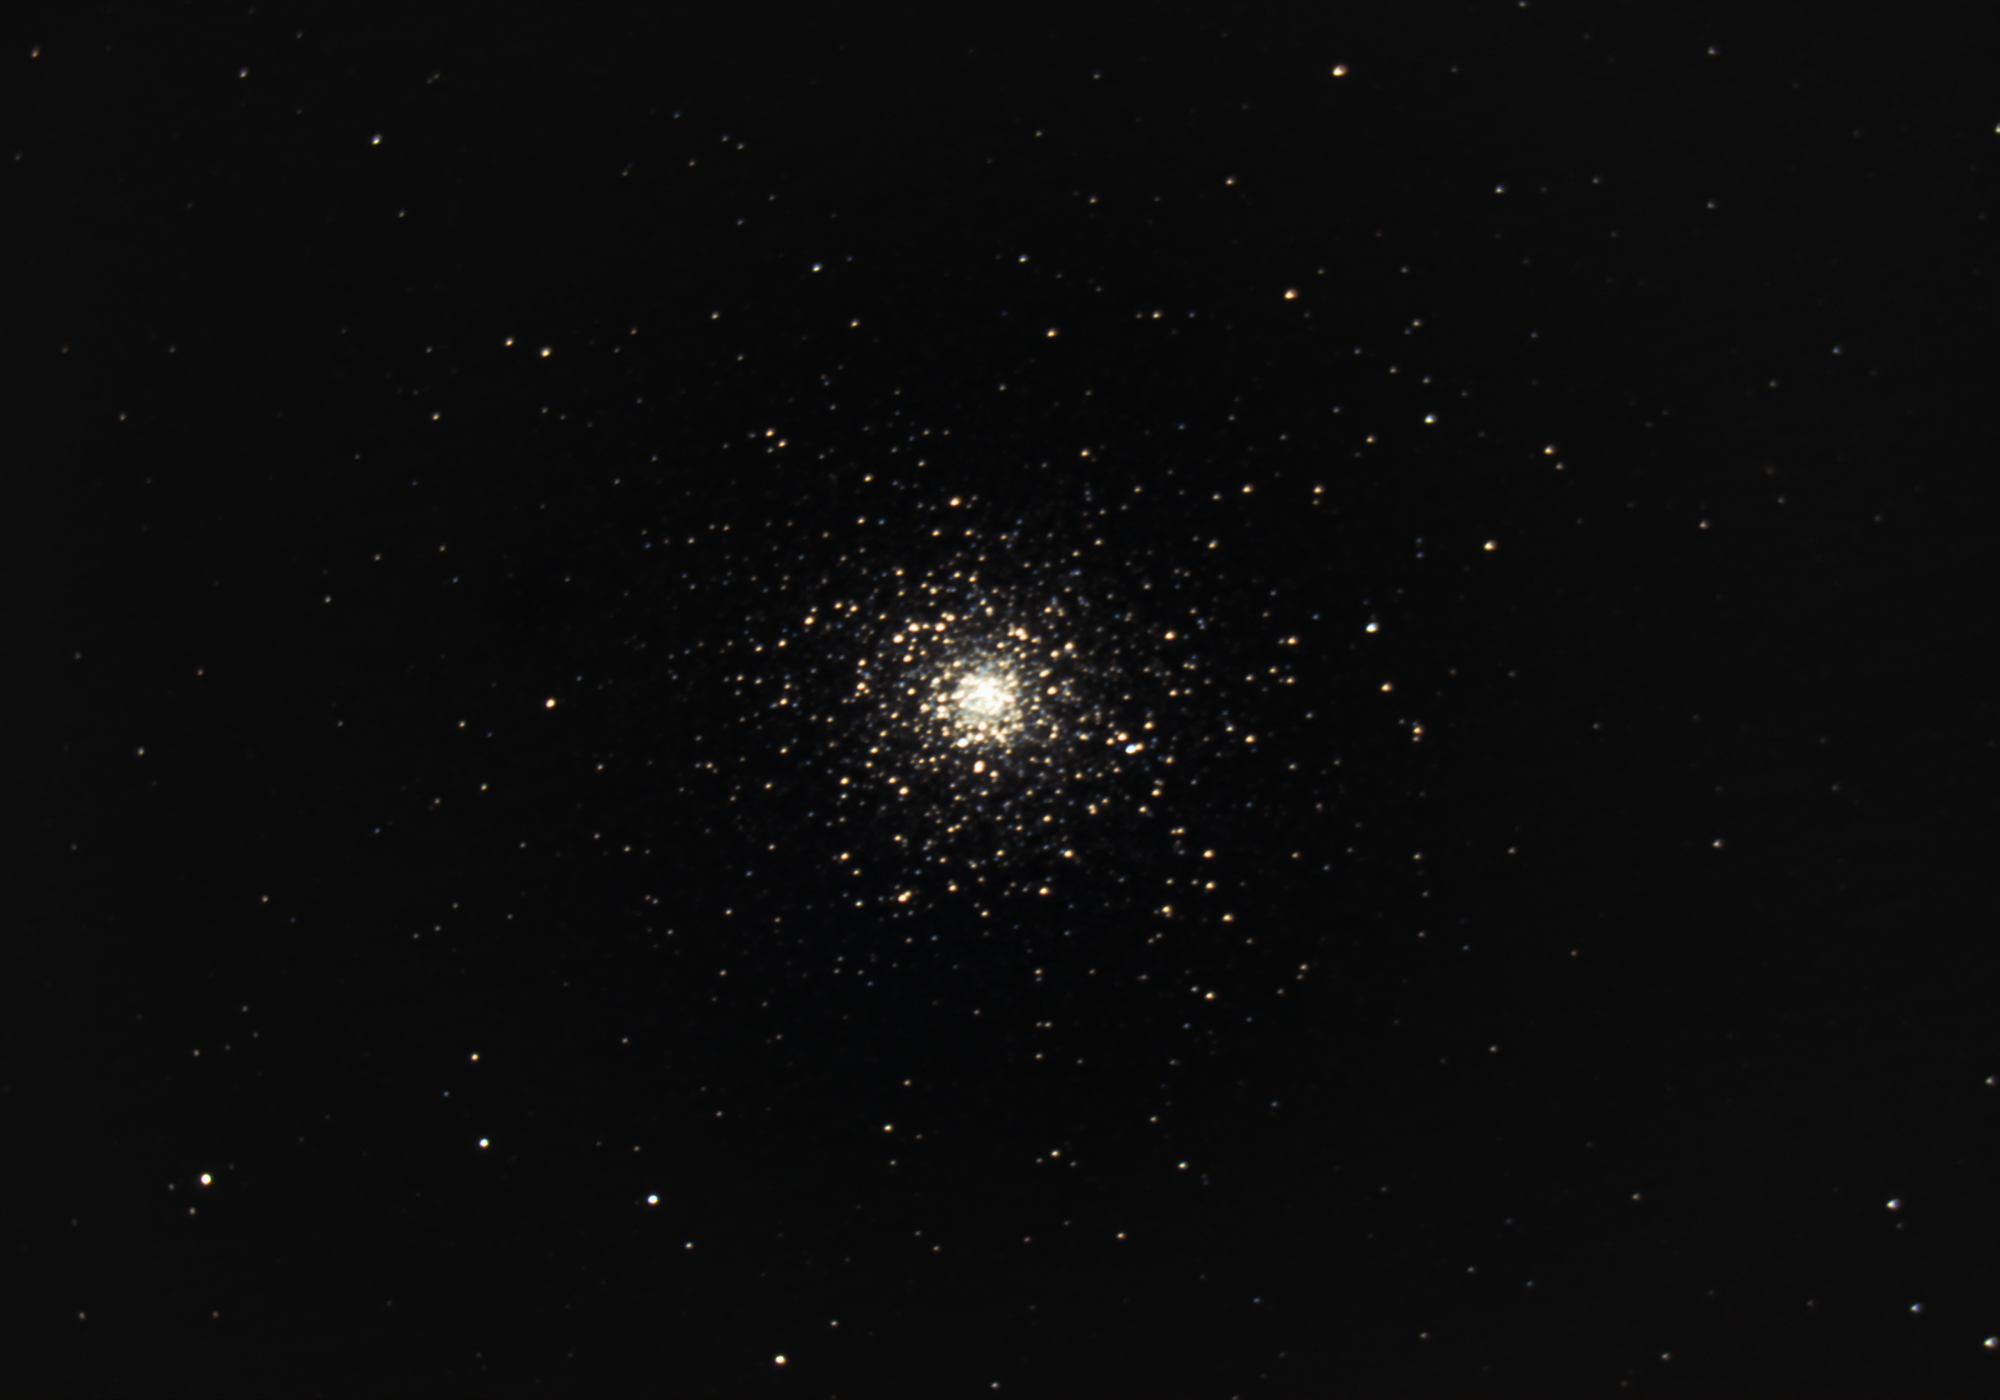 Globular Clubster Messier 5, amateur astrophotography taken from a dark site with a full moon.